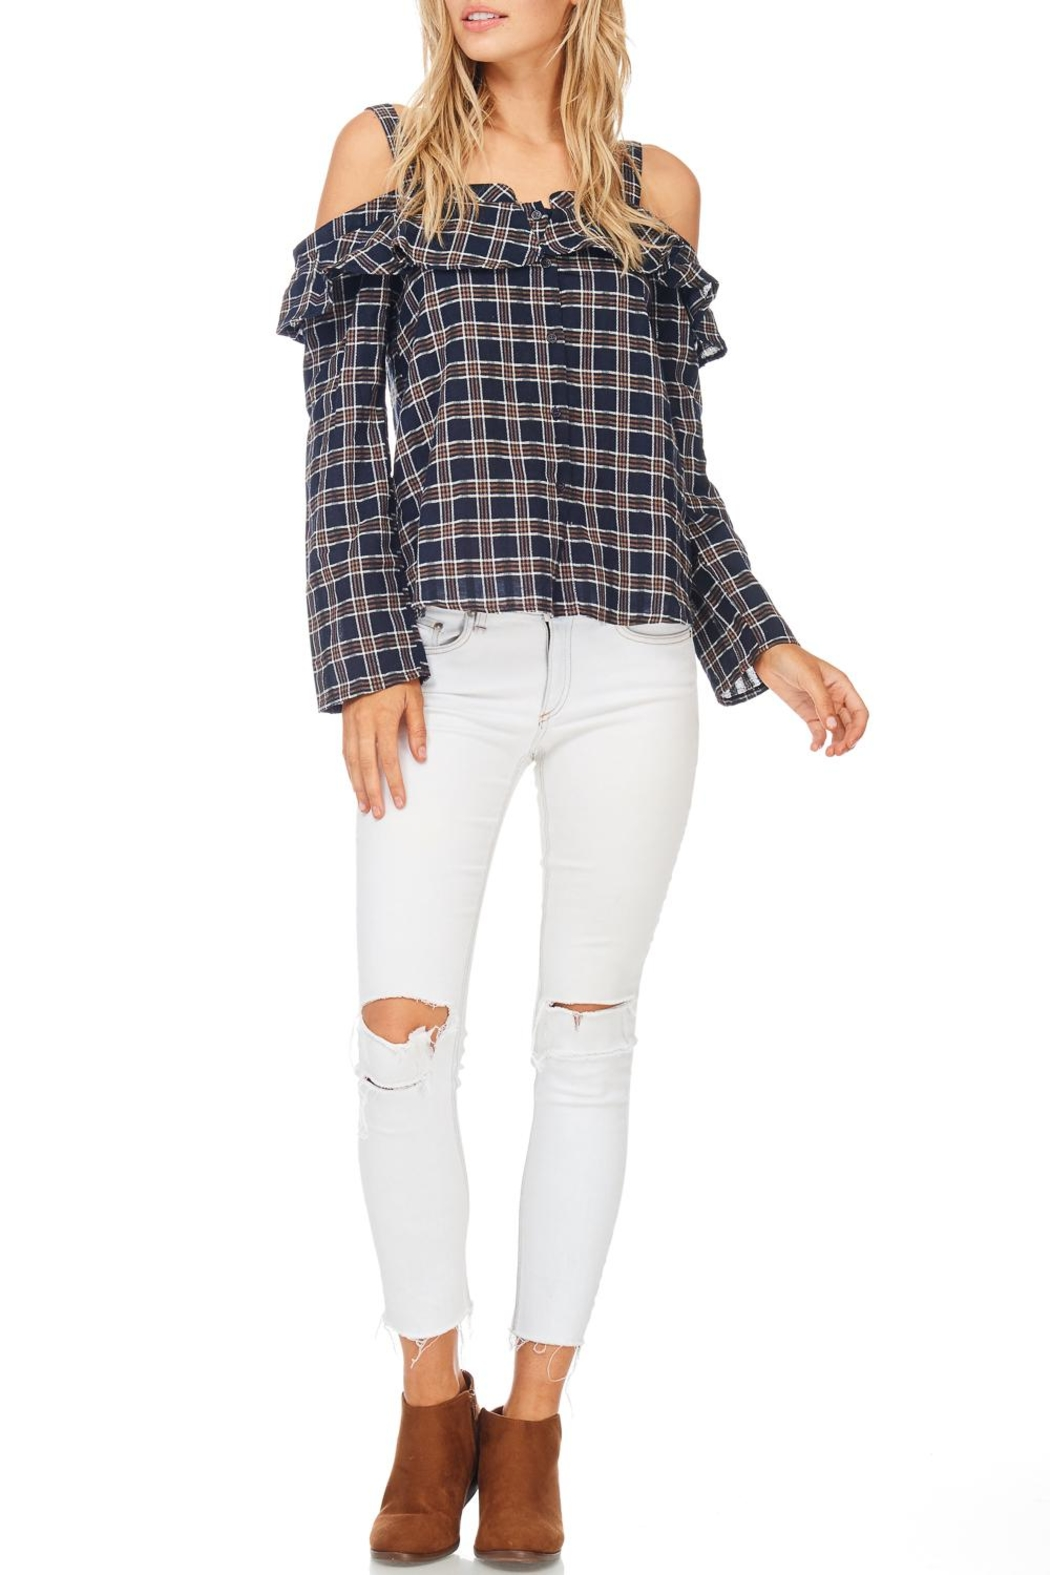 LoveRiche Plaid Ruffle Top - Front Cropped Image